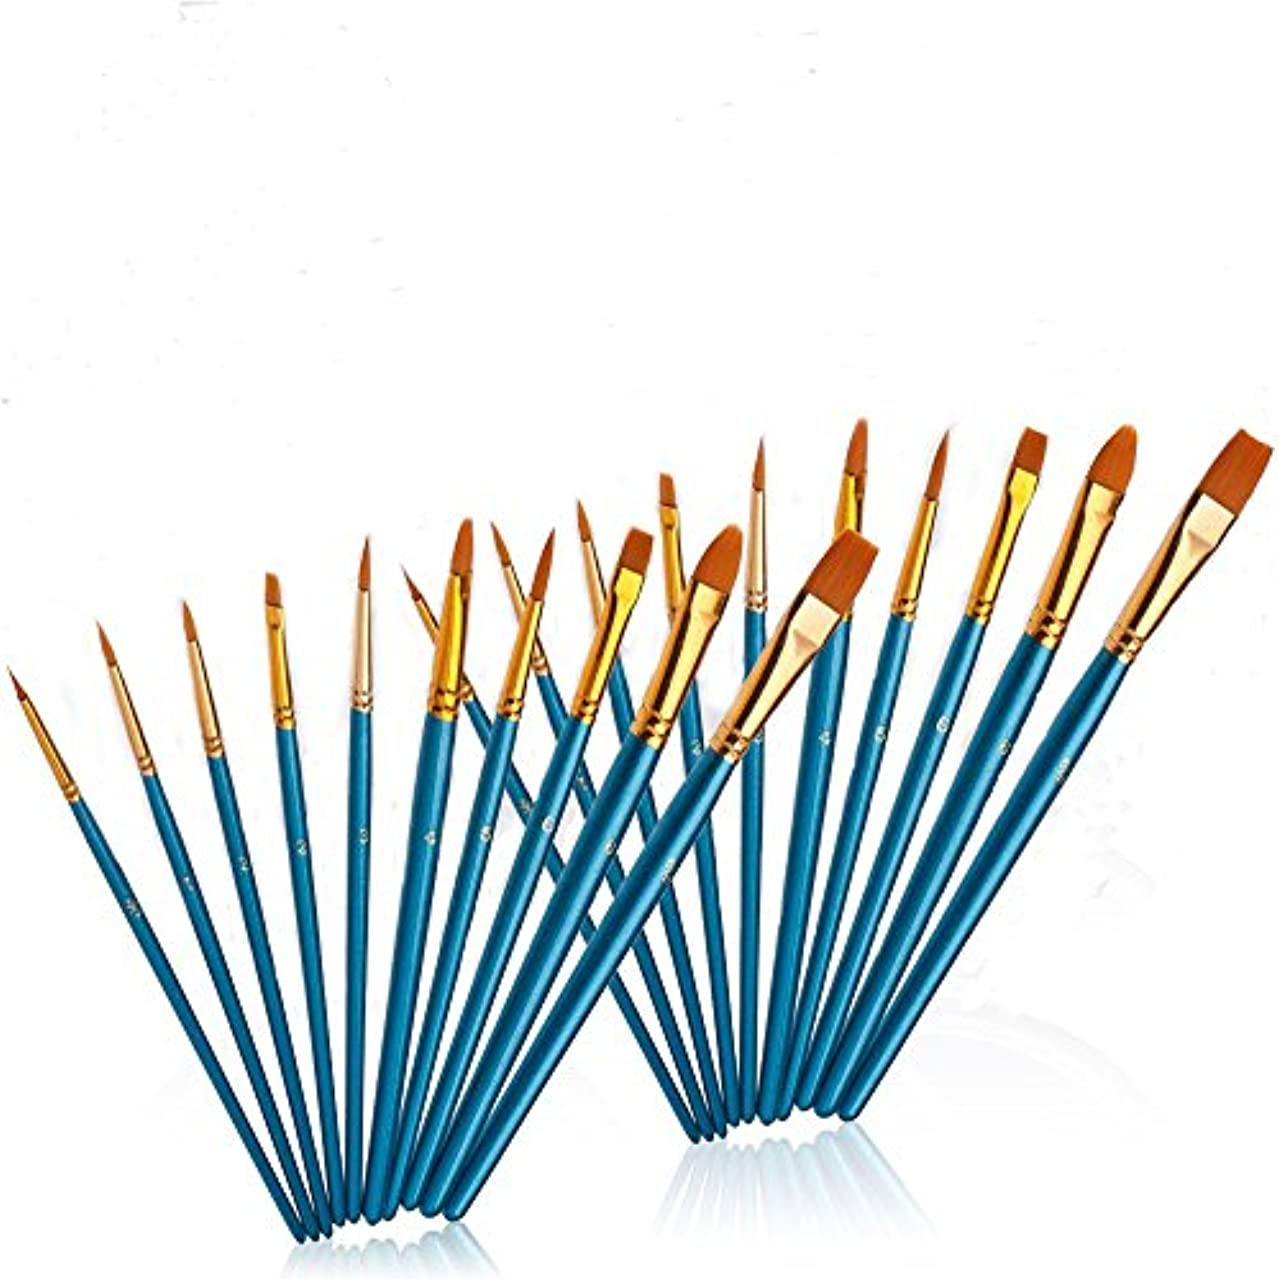 YXQSED-20 Pieces Blue Paint Brush Set Quality Artist Paint Brushes Artist Brushes for Acrylic Oil Watercolor Gouache Face Painting and Plein Air Painting Students